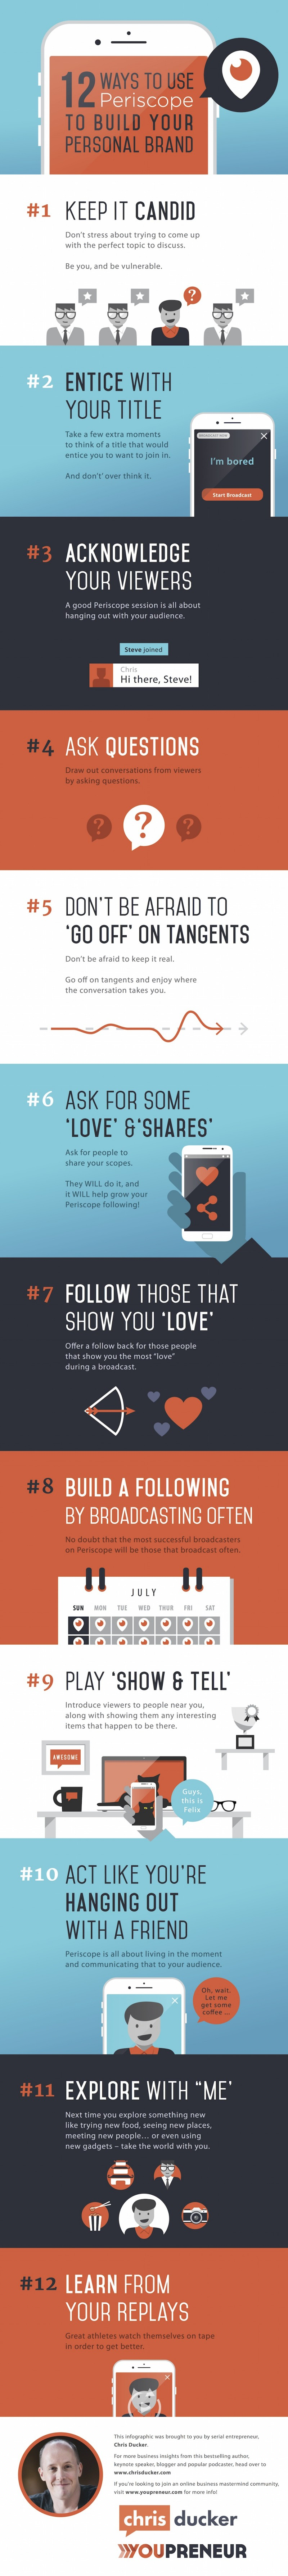 Infographie 284 - Periscope personal branding